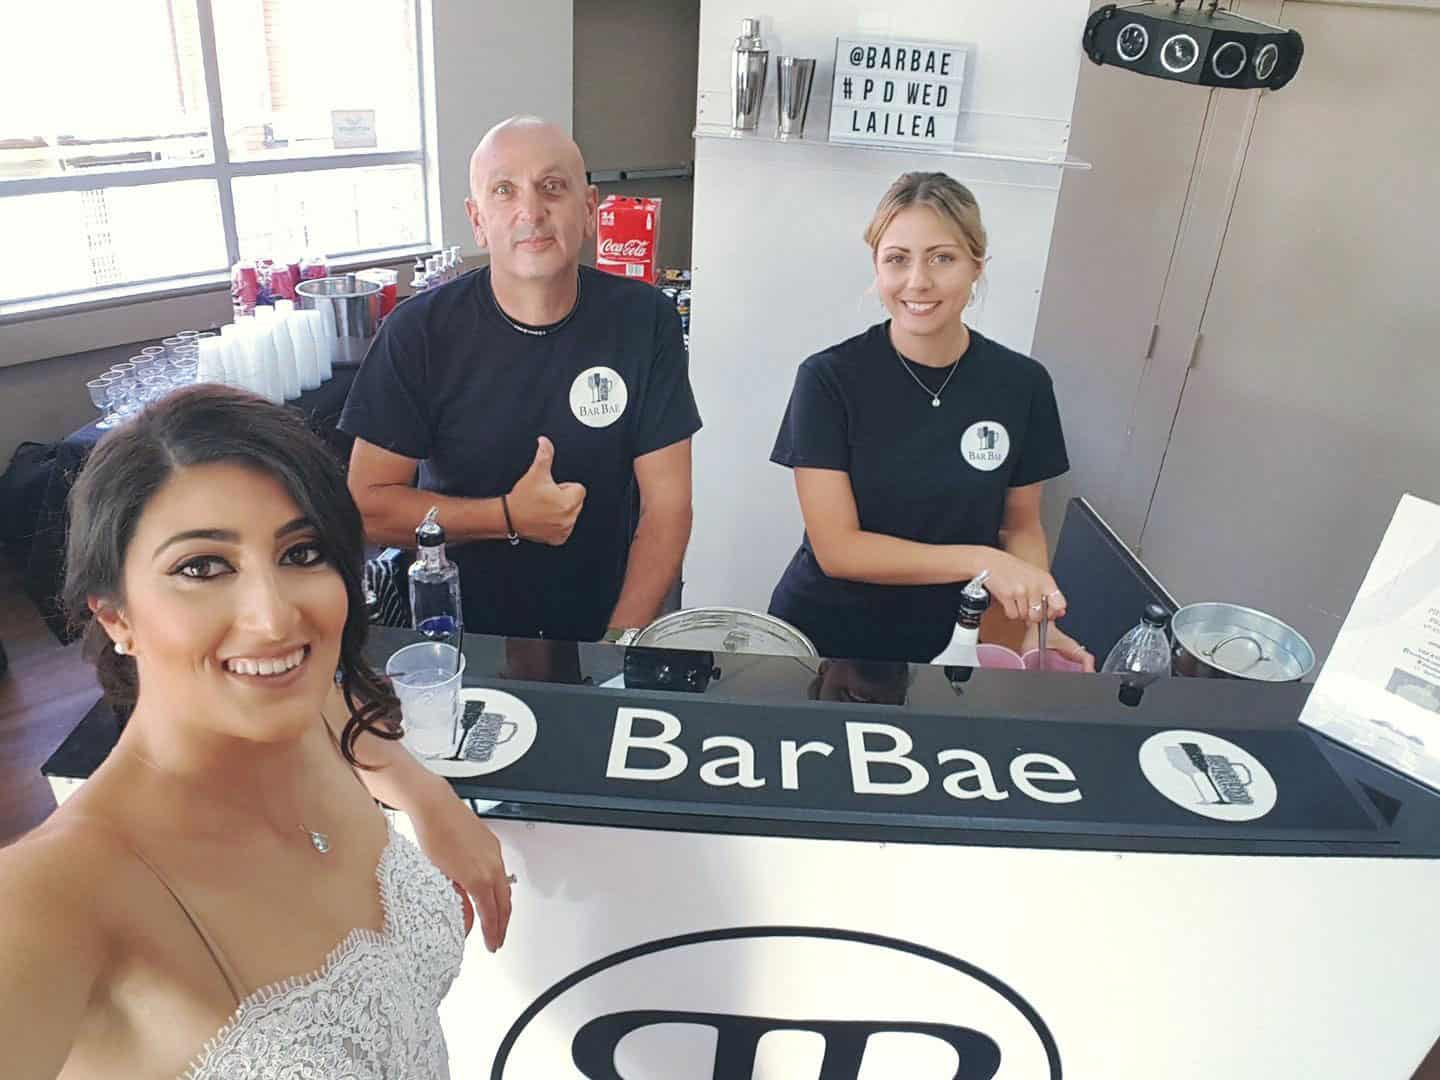 BarBae team selfie